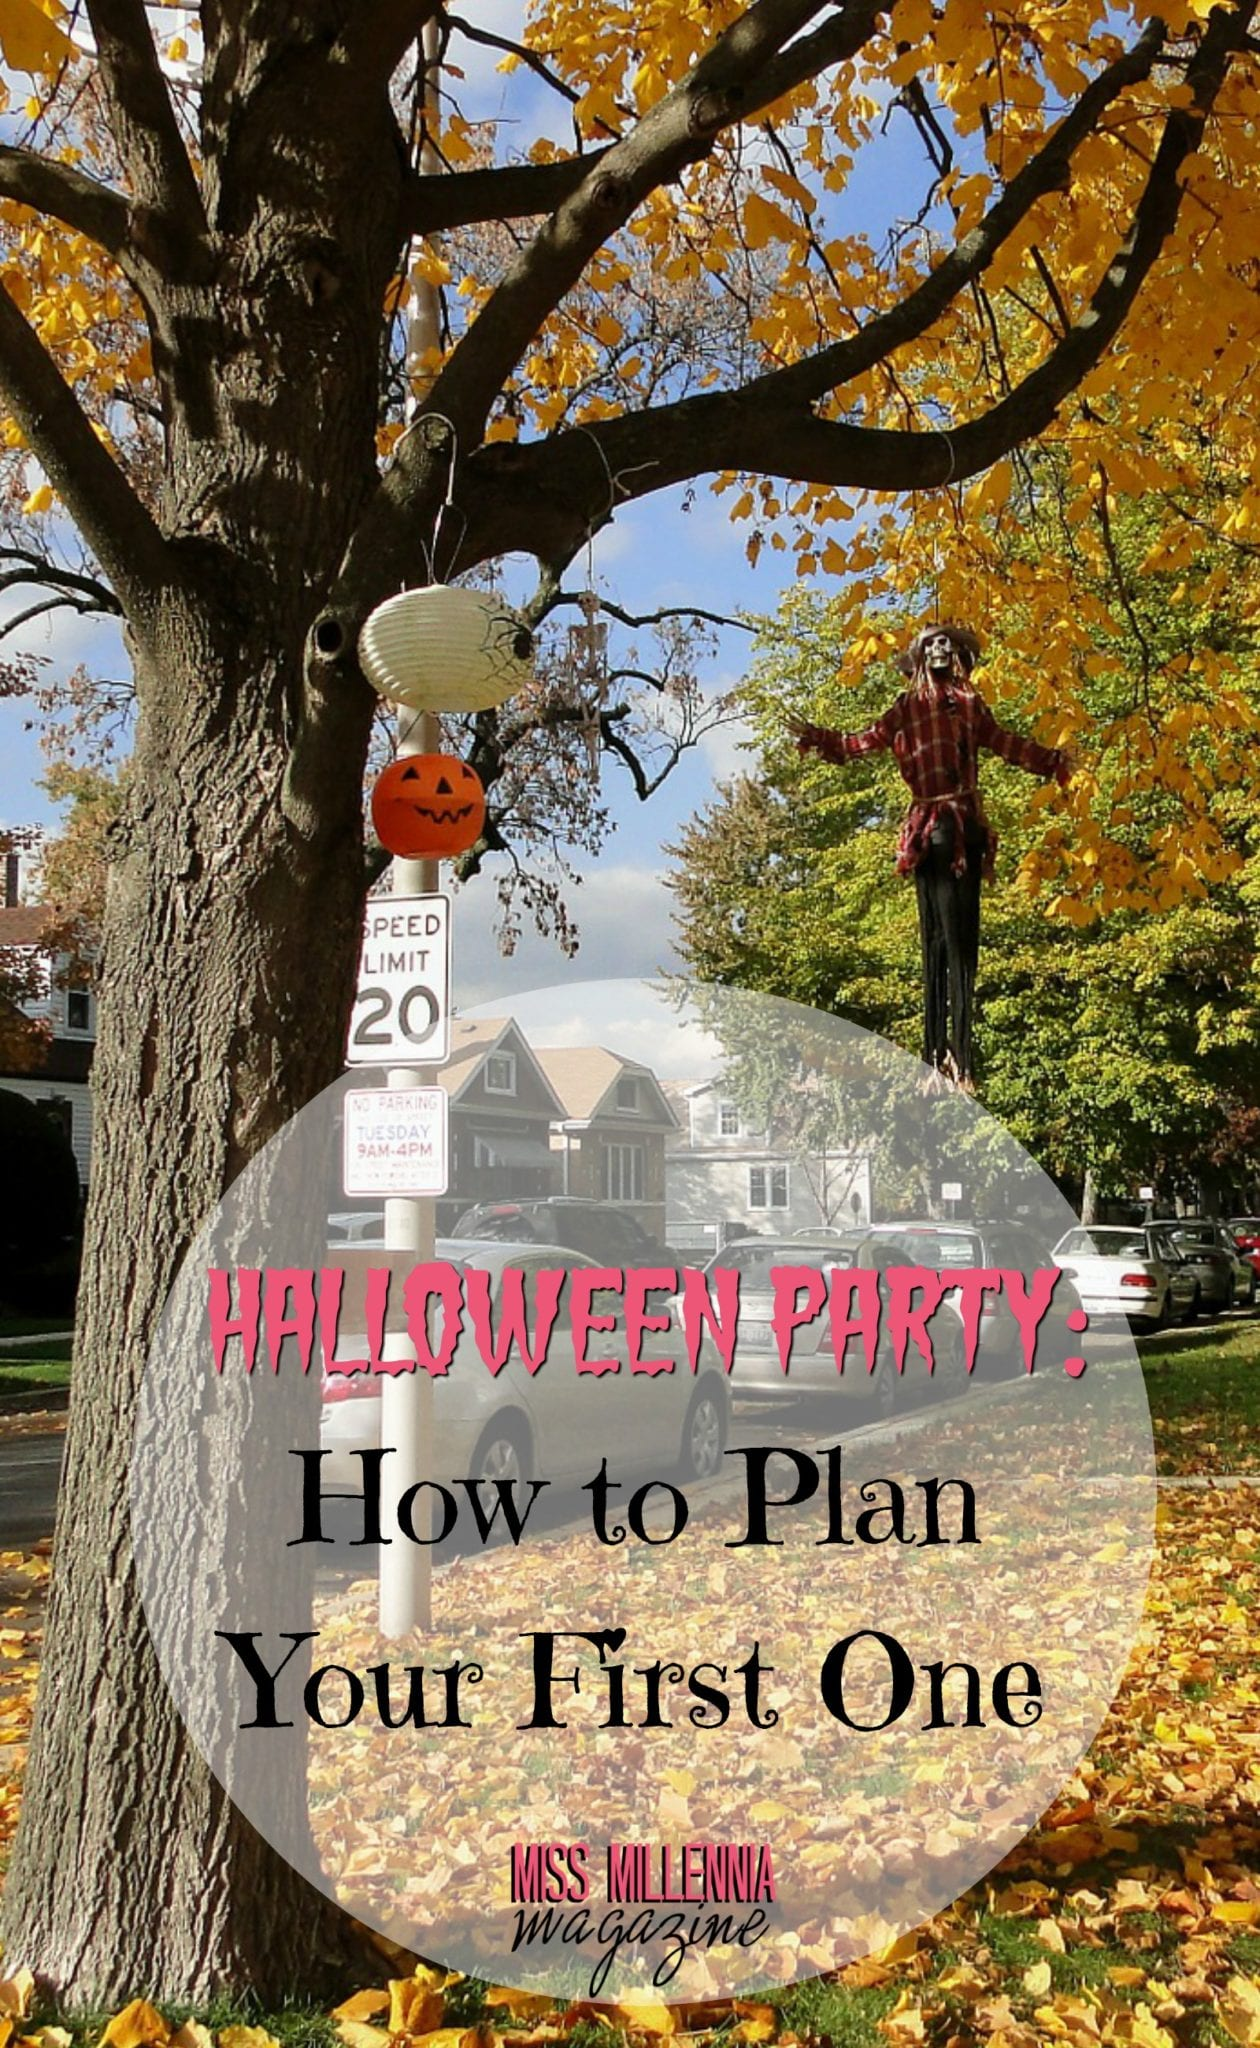 Plan your first spookfest with these cool ideas for a Halloween party.